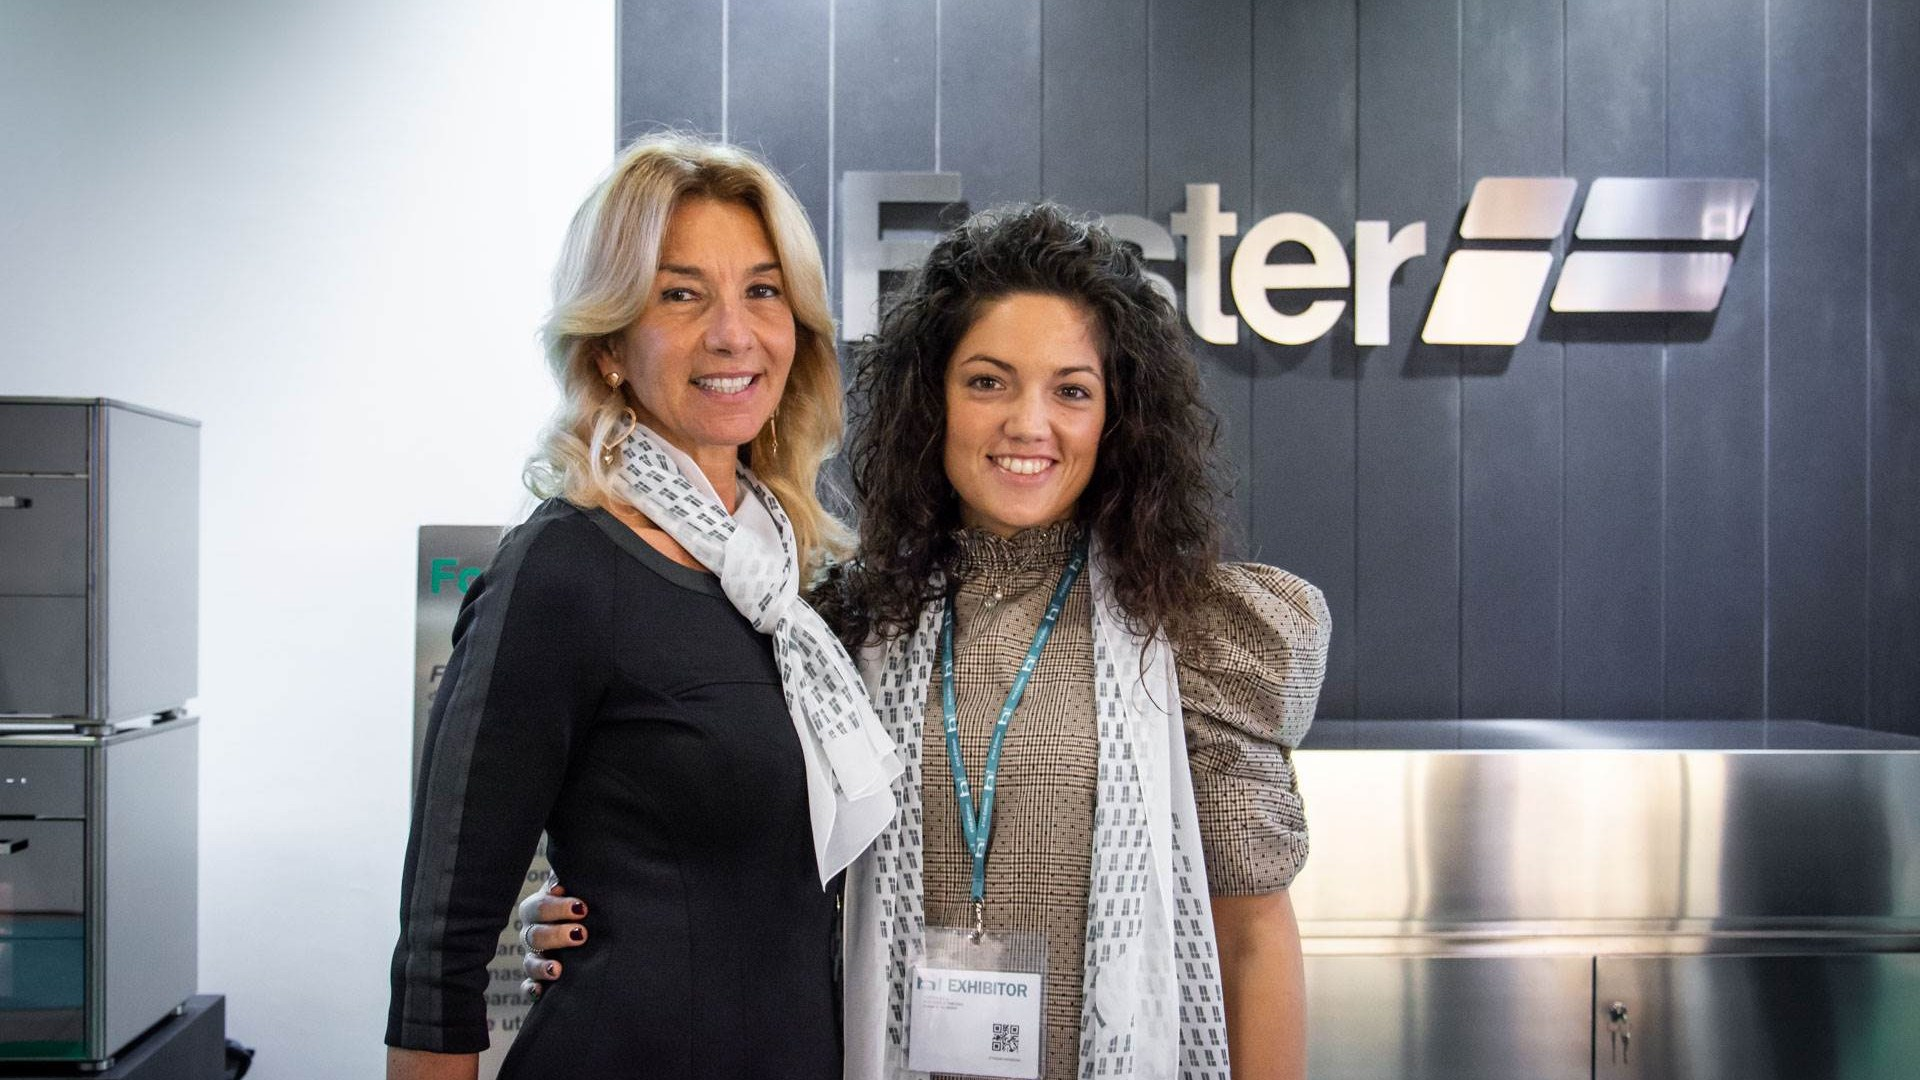 Foster Host Milano 2019, be specialists